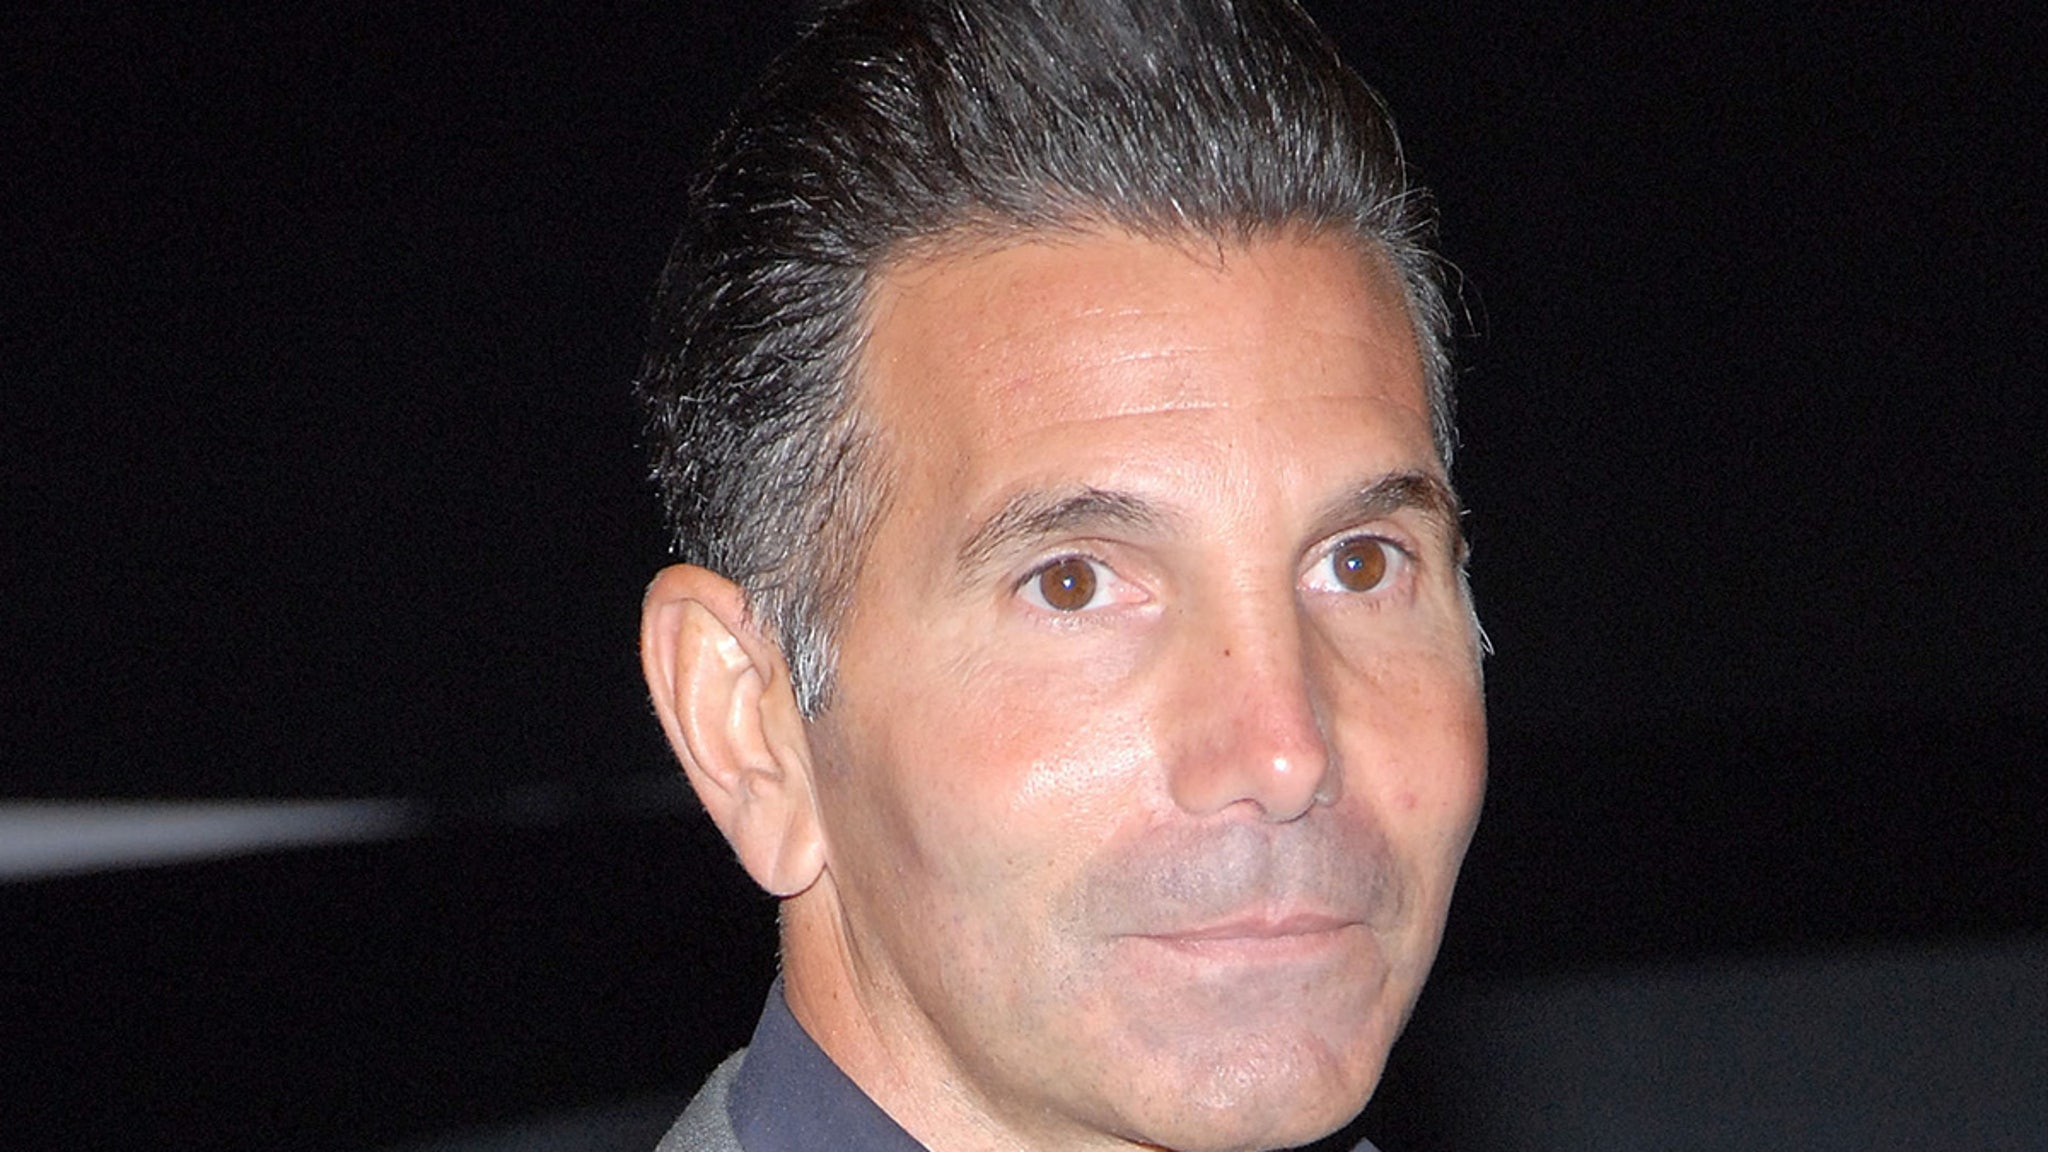 Mossimo Giannulli Surrenders to Begin 5-Month Prison Sentence for College Bribery Scandal